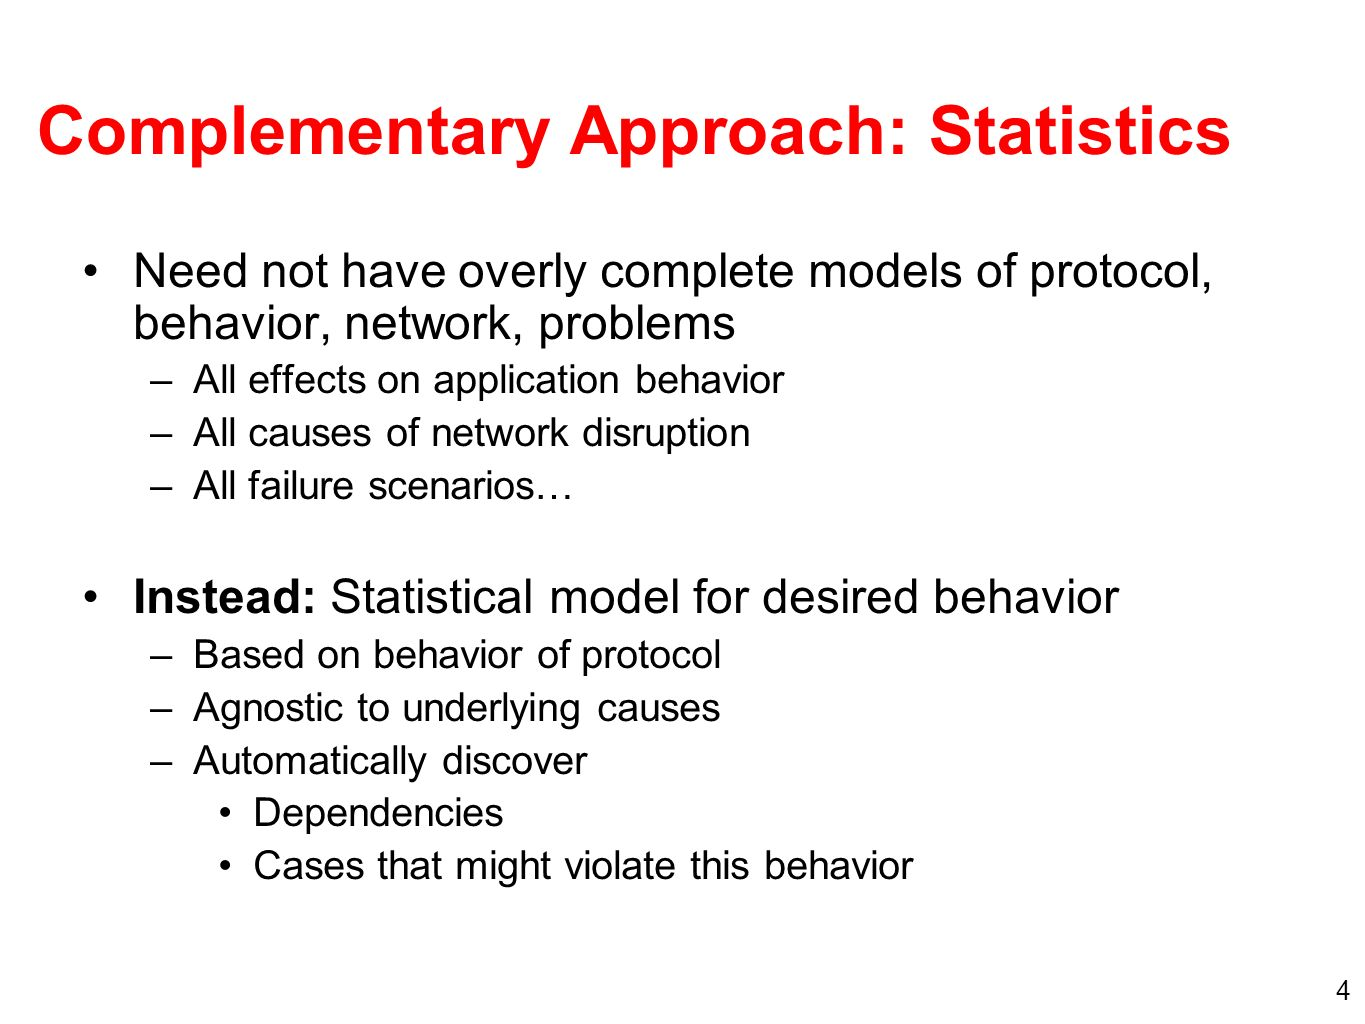 4 Complementary Approach: Statistics Need not have overly complete models of protocol, behavior, network, problems –All effects on application behavior –All causes of network disruption –All failure scenarios… Instead: Statistical model for desired behavior –Based on behavior of protocol –Agnostic to underlying causes –Automatically discover Dependencies Cases that might violate this behavior